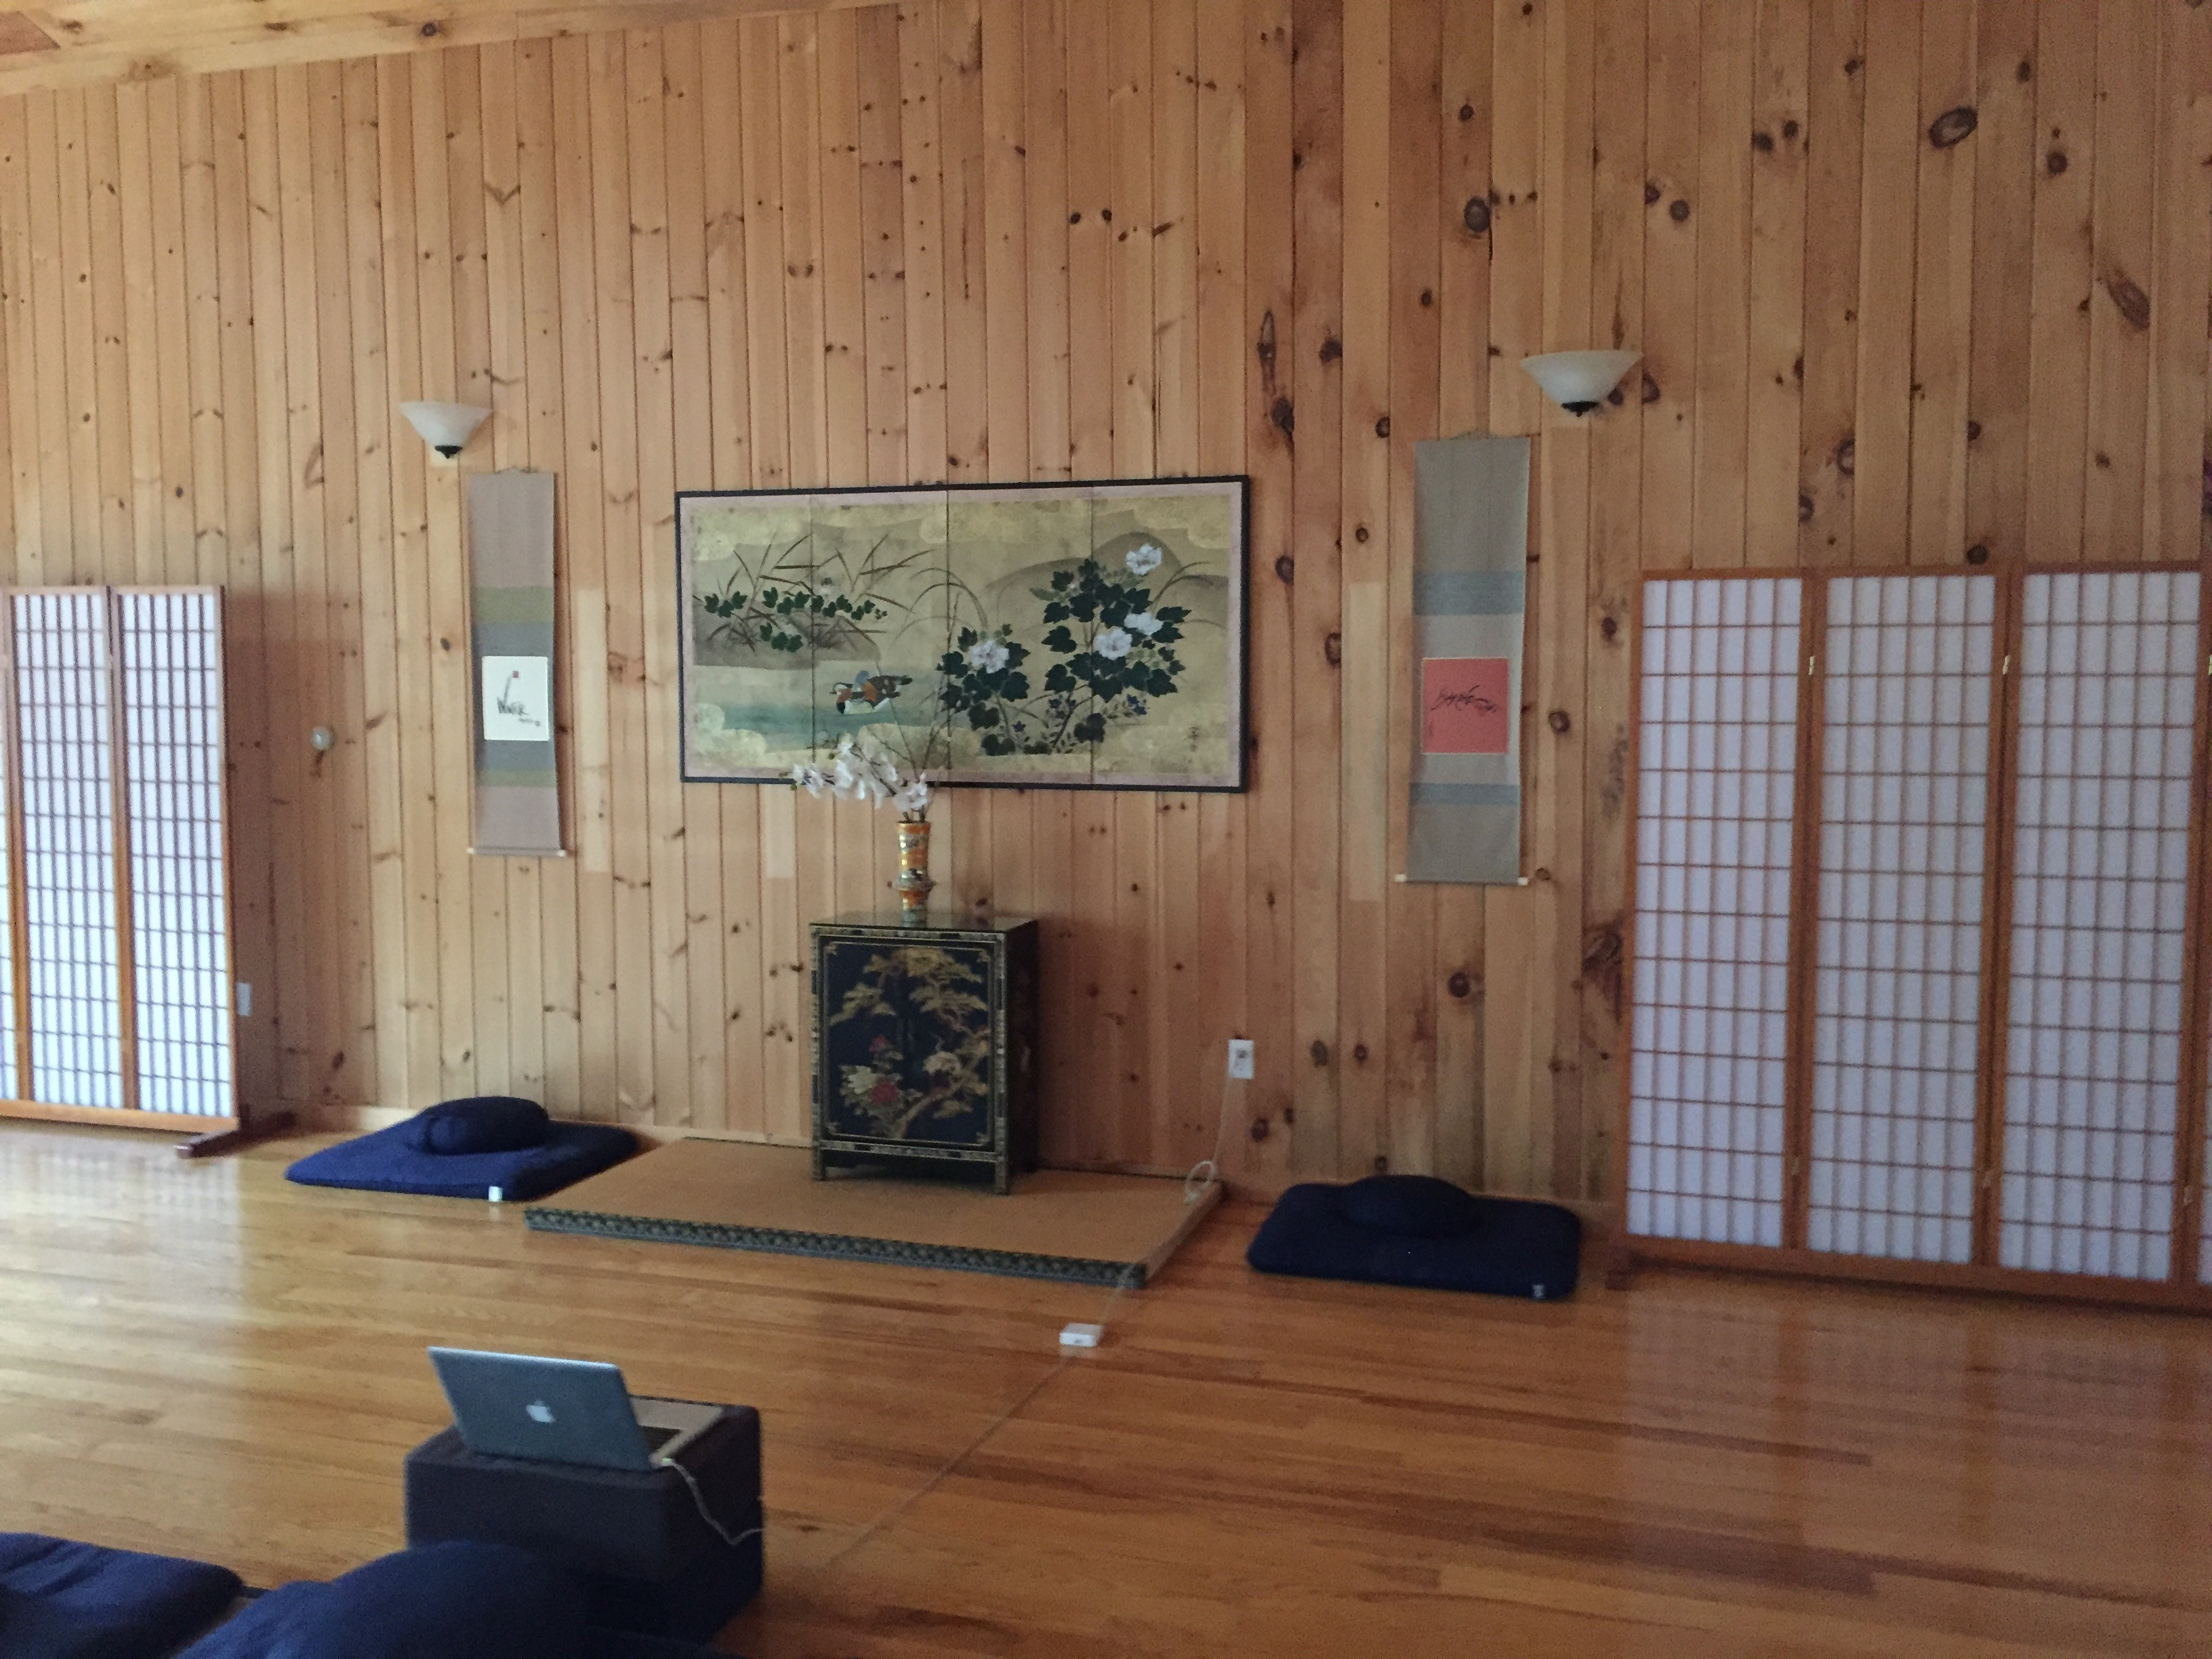 Buddhist paintings and scrolls